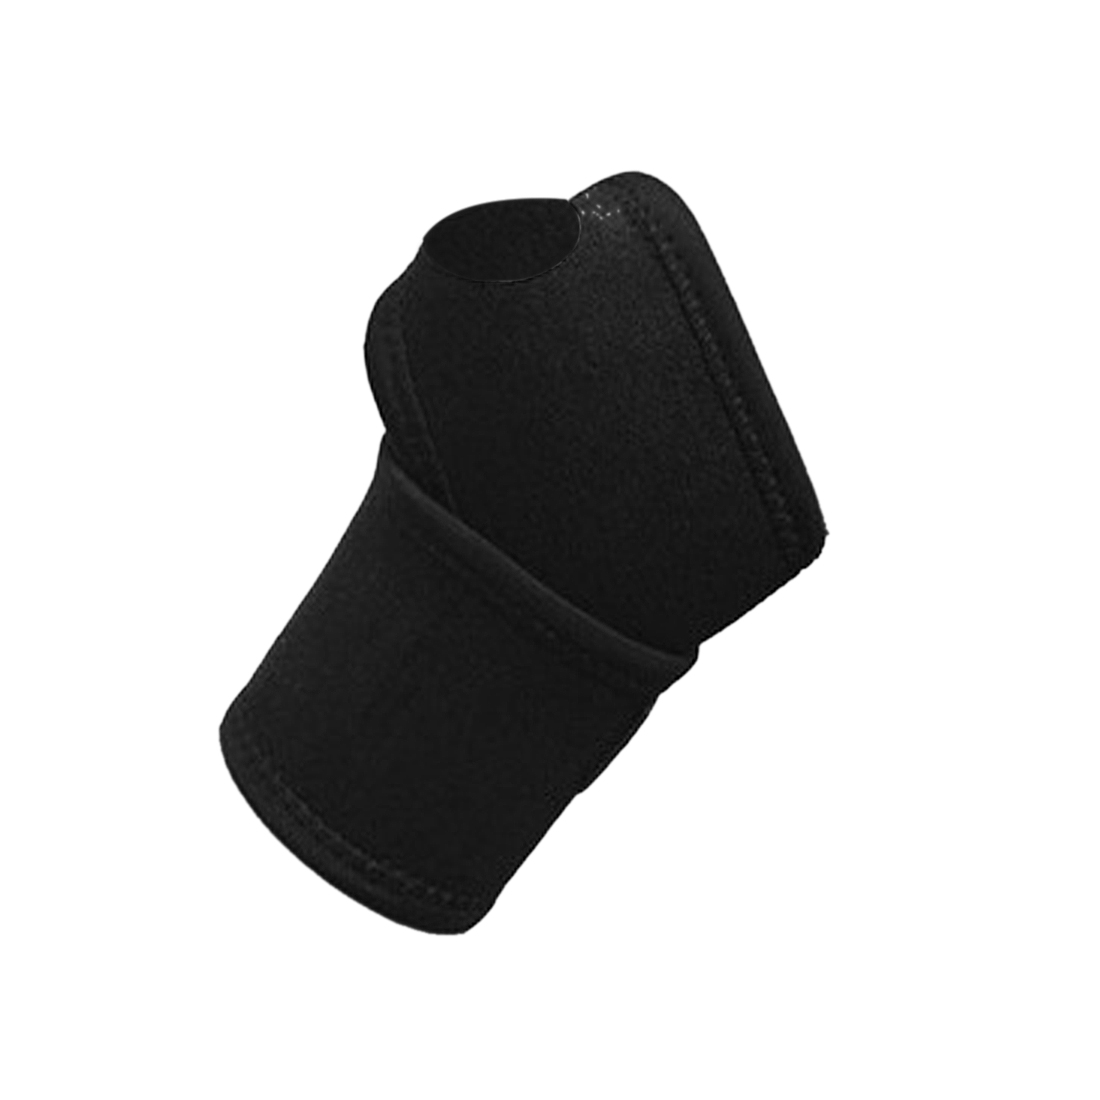 Black Elastic Sports Protector Wrist Brace Wrapping Hand Support Wristband